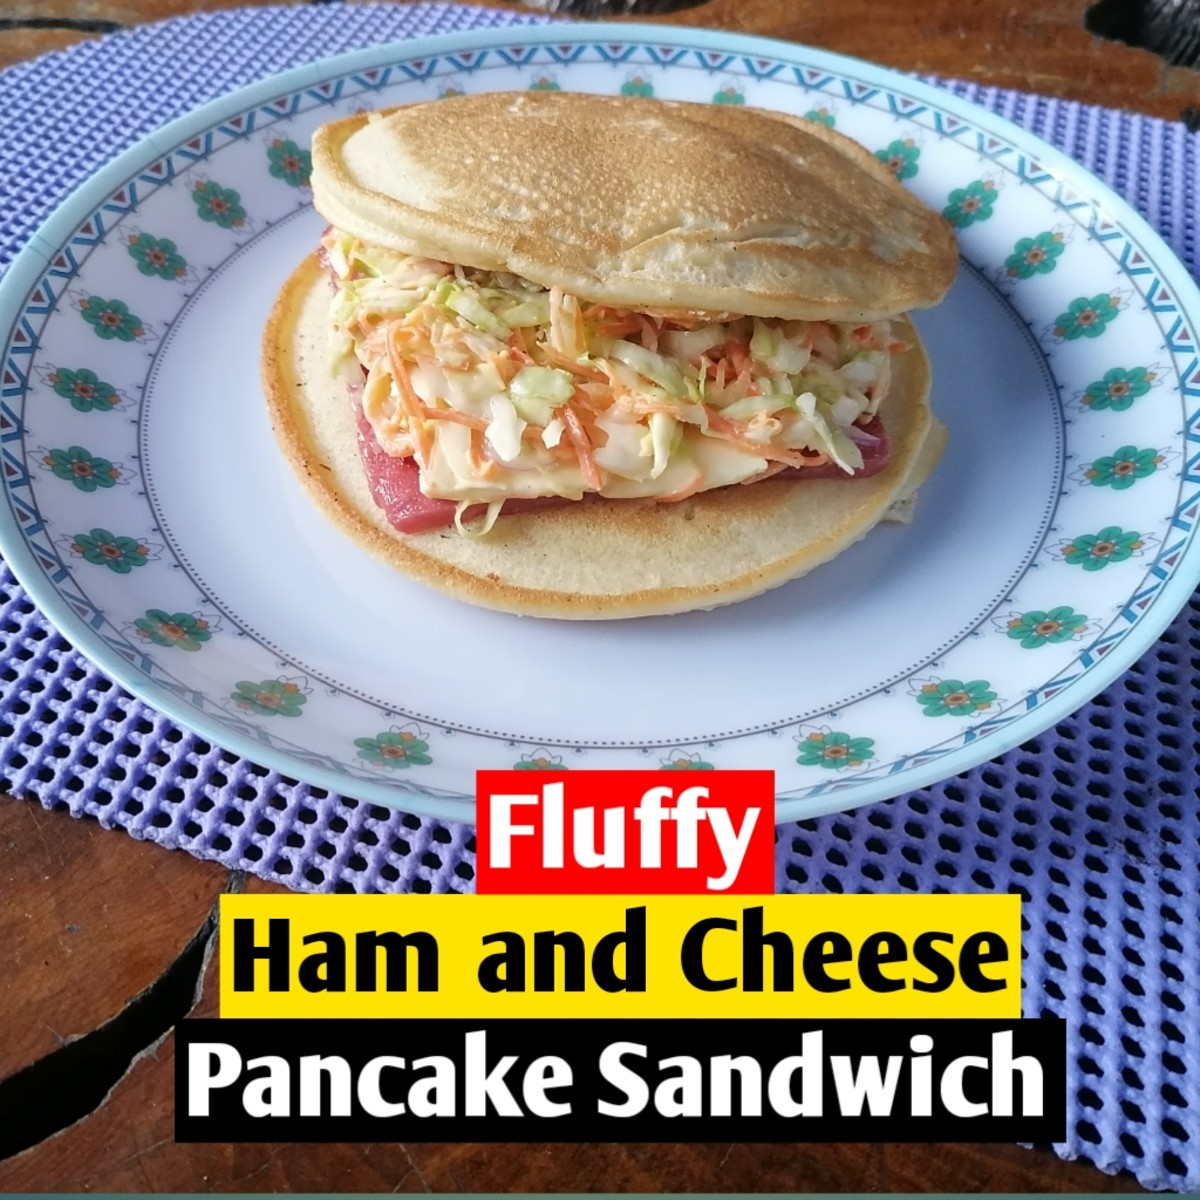 Why not combine breakfast pancakes and a ham and cheese sandwich?